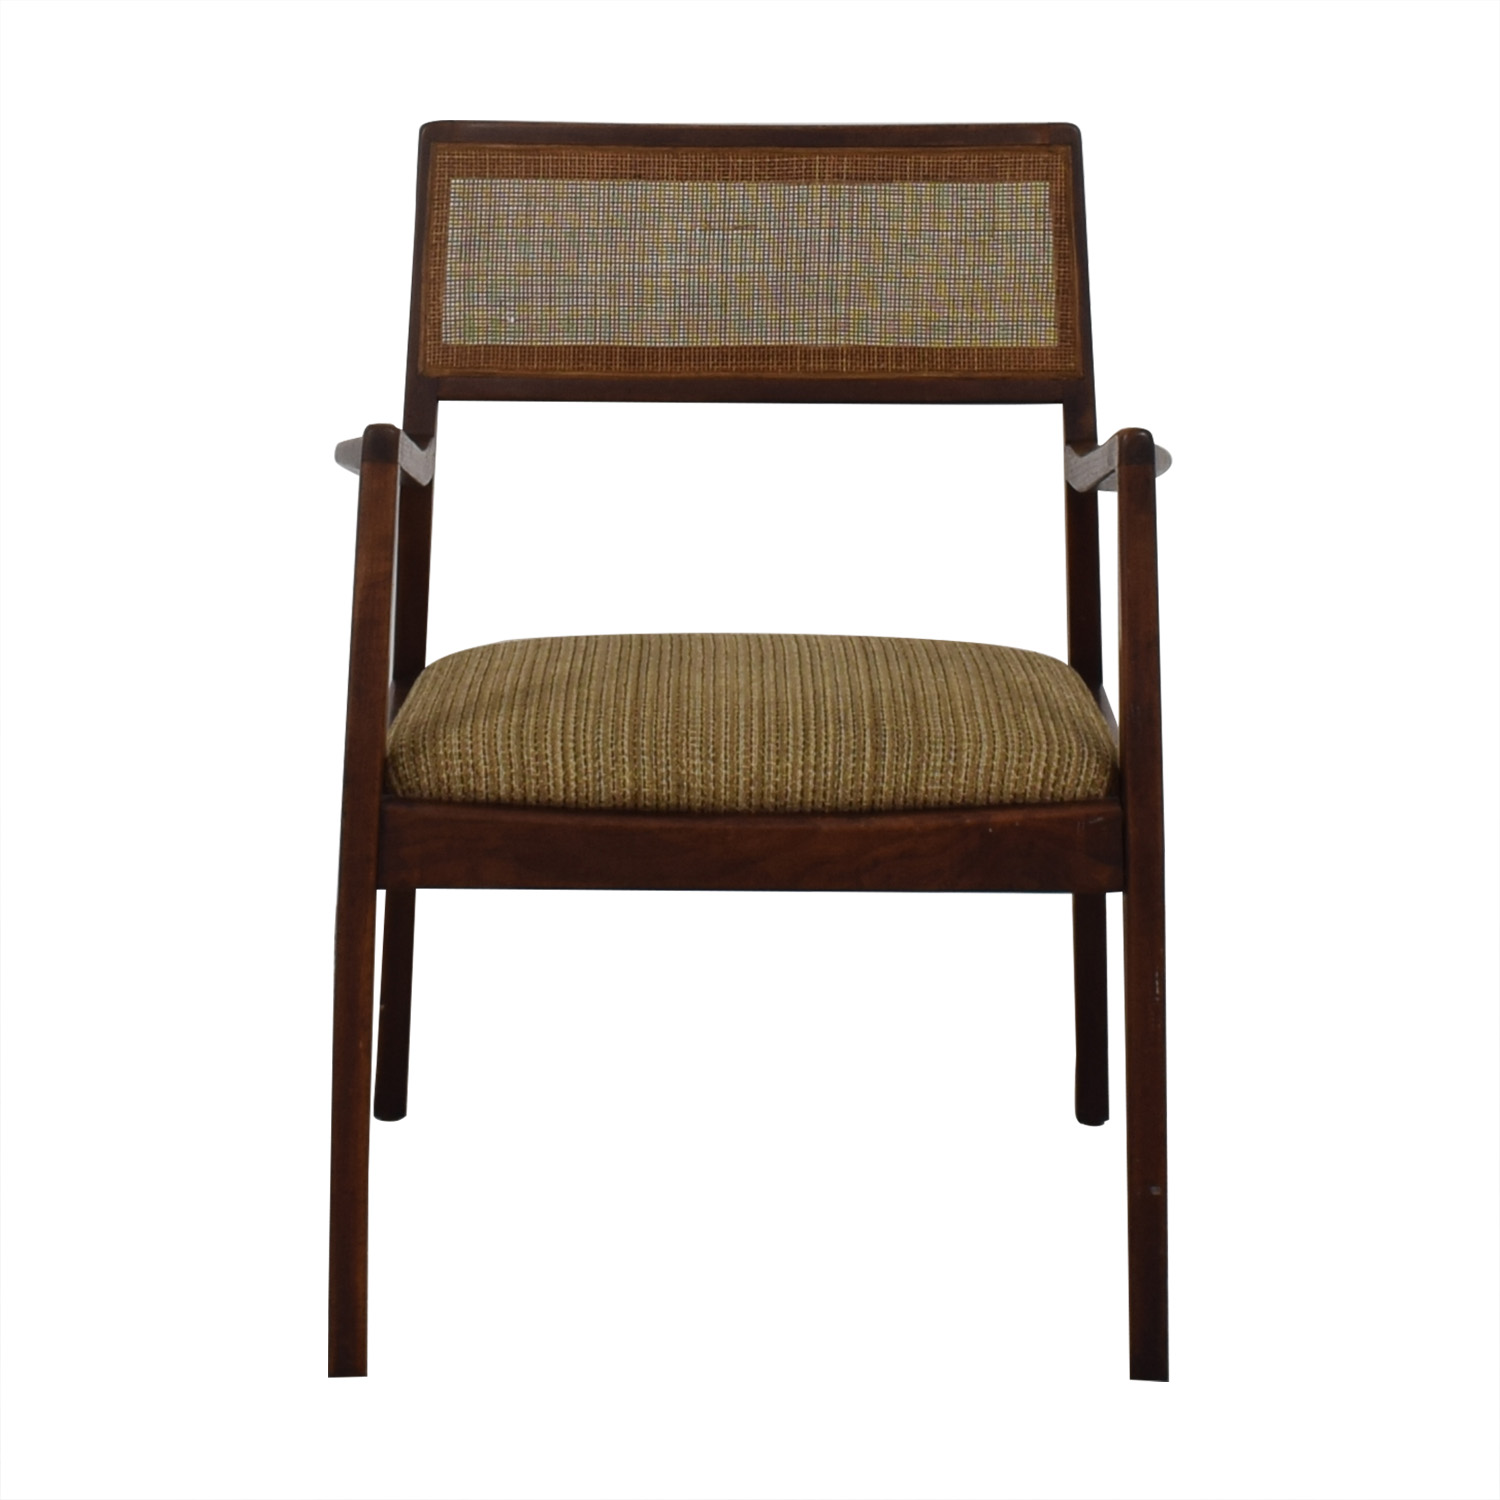 Mid Century Modern Accent Chair price